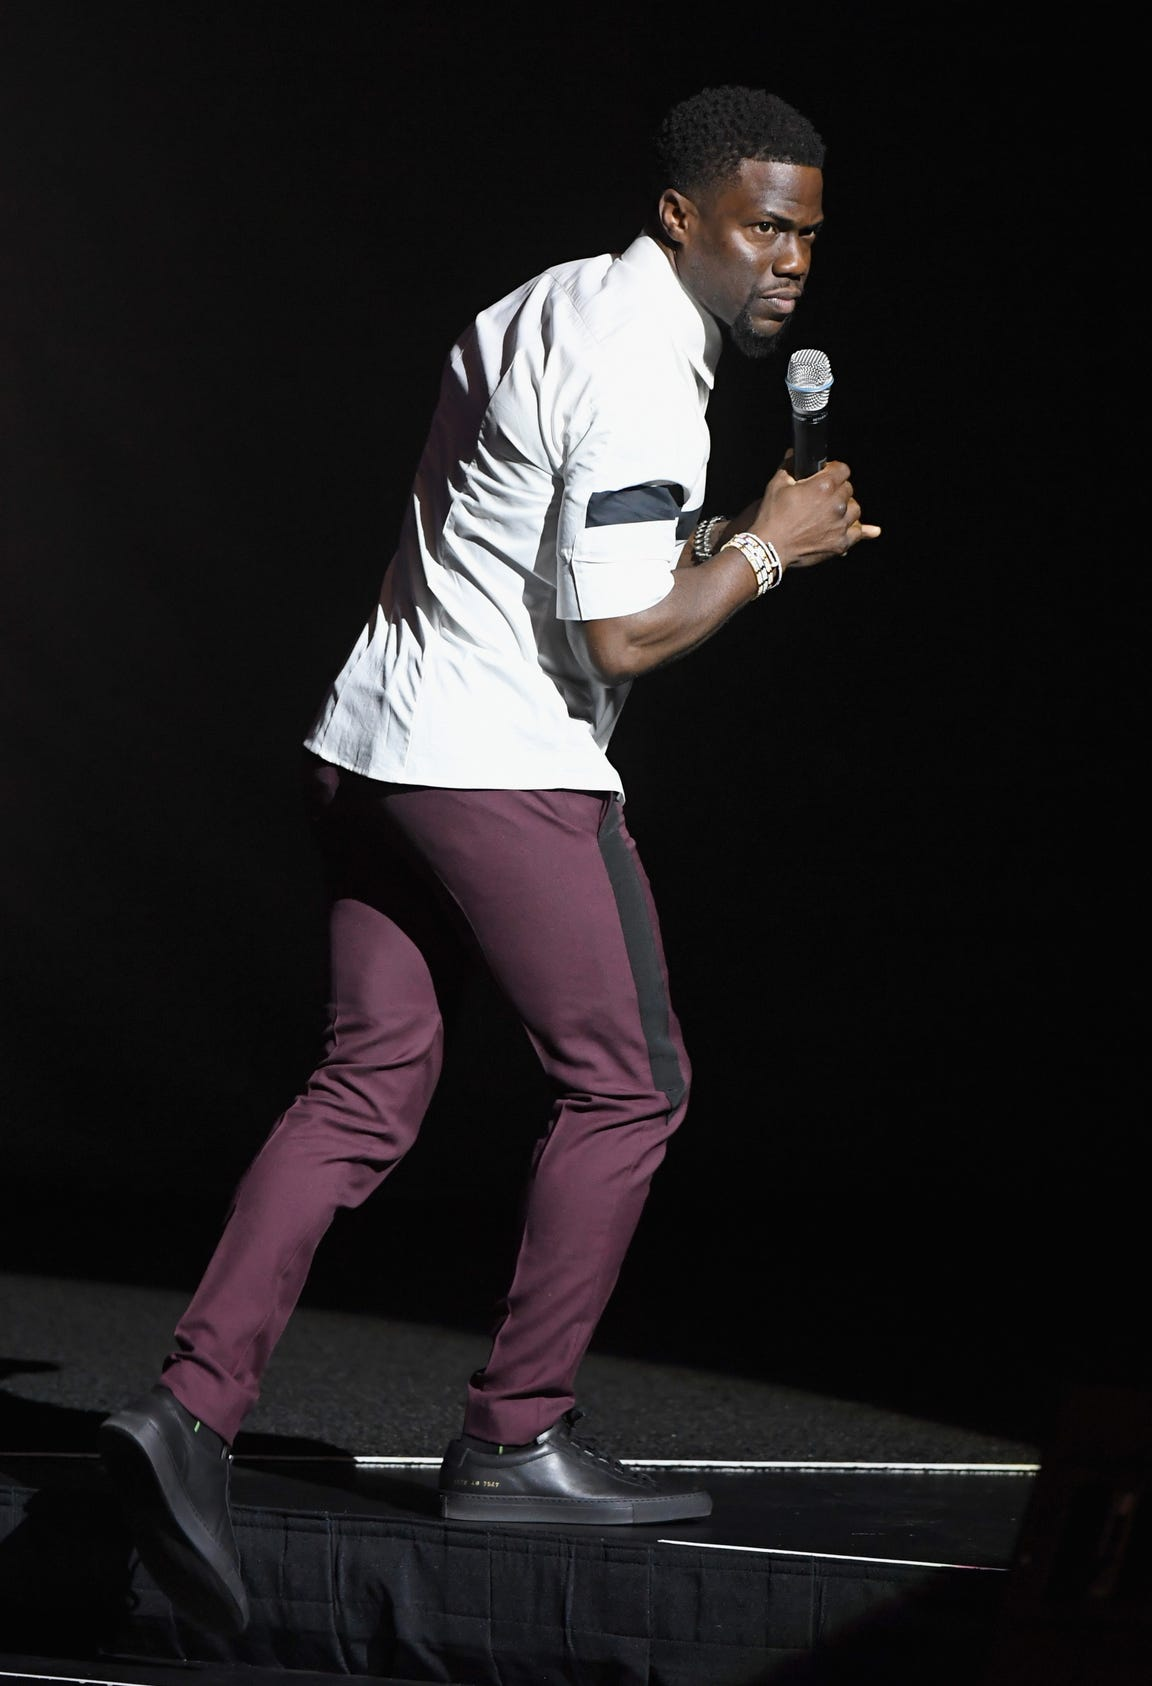 The Kevin Hart Irresponsible Tour begins at 7 p.m. Sunday, Oct. 21 at the American Bank Center.